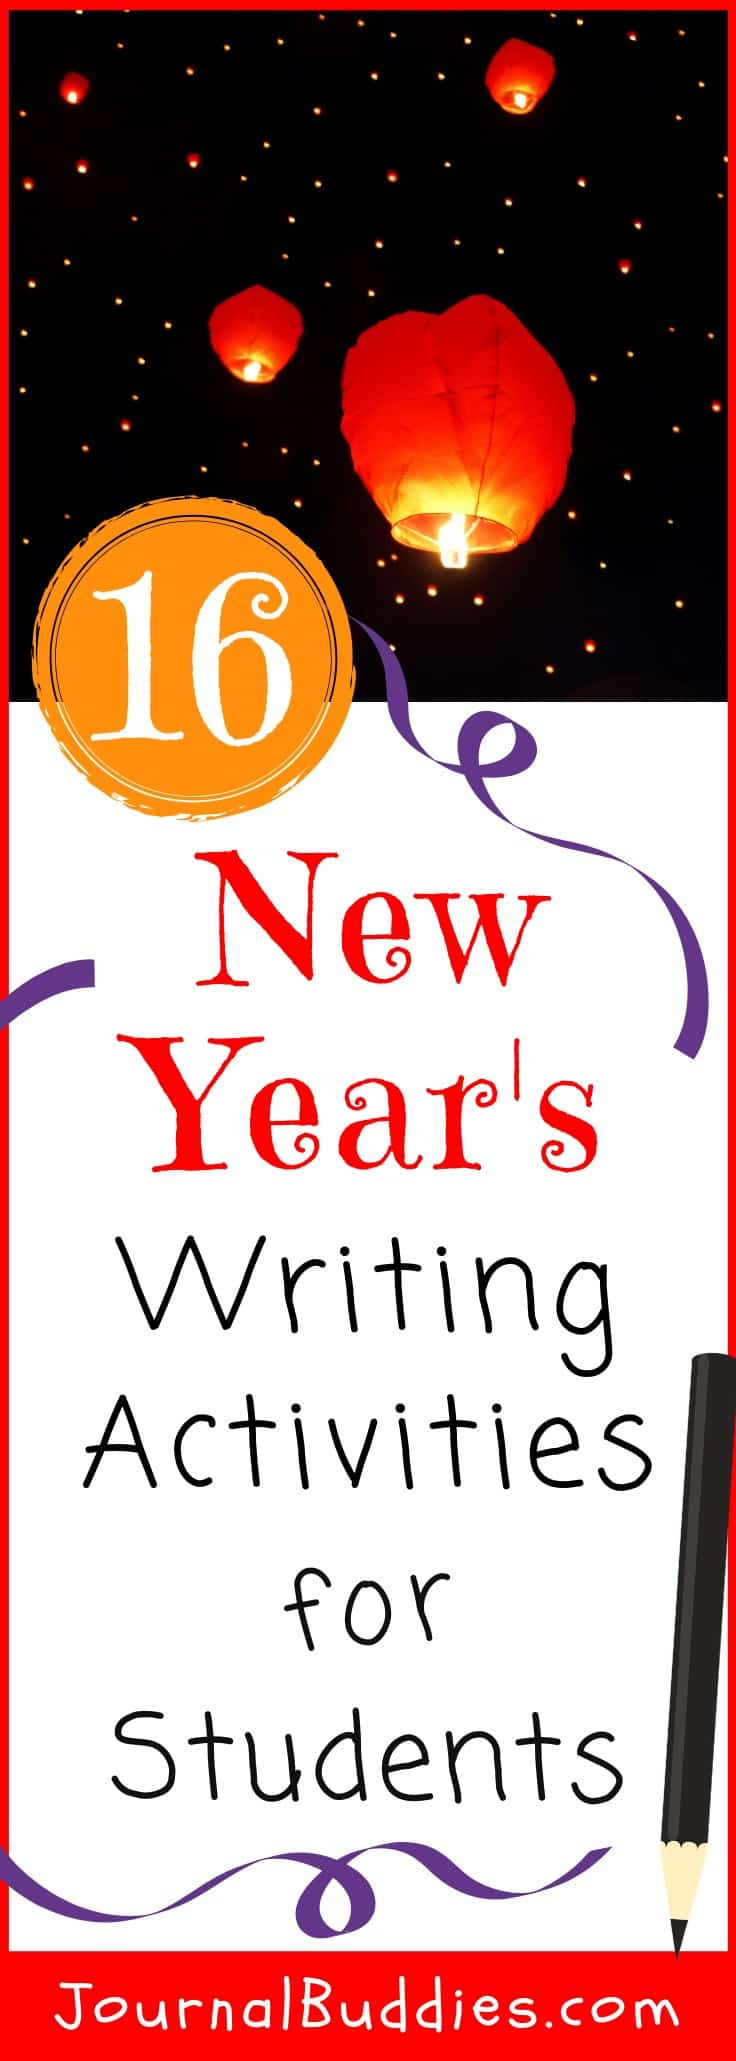 Start January off on the right foot with your students with these 16 fun and fabulous New Years writing activities! These new year writing activities are designed to help students improve their writing skills while also focusing on a positive start to the new year.